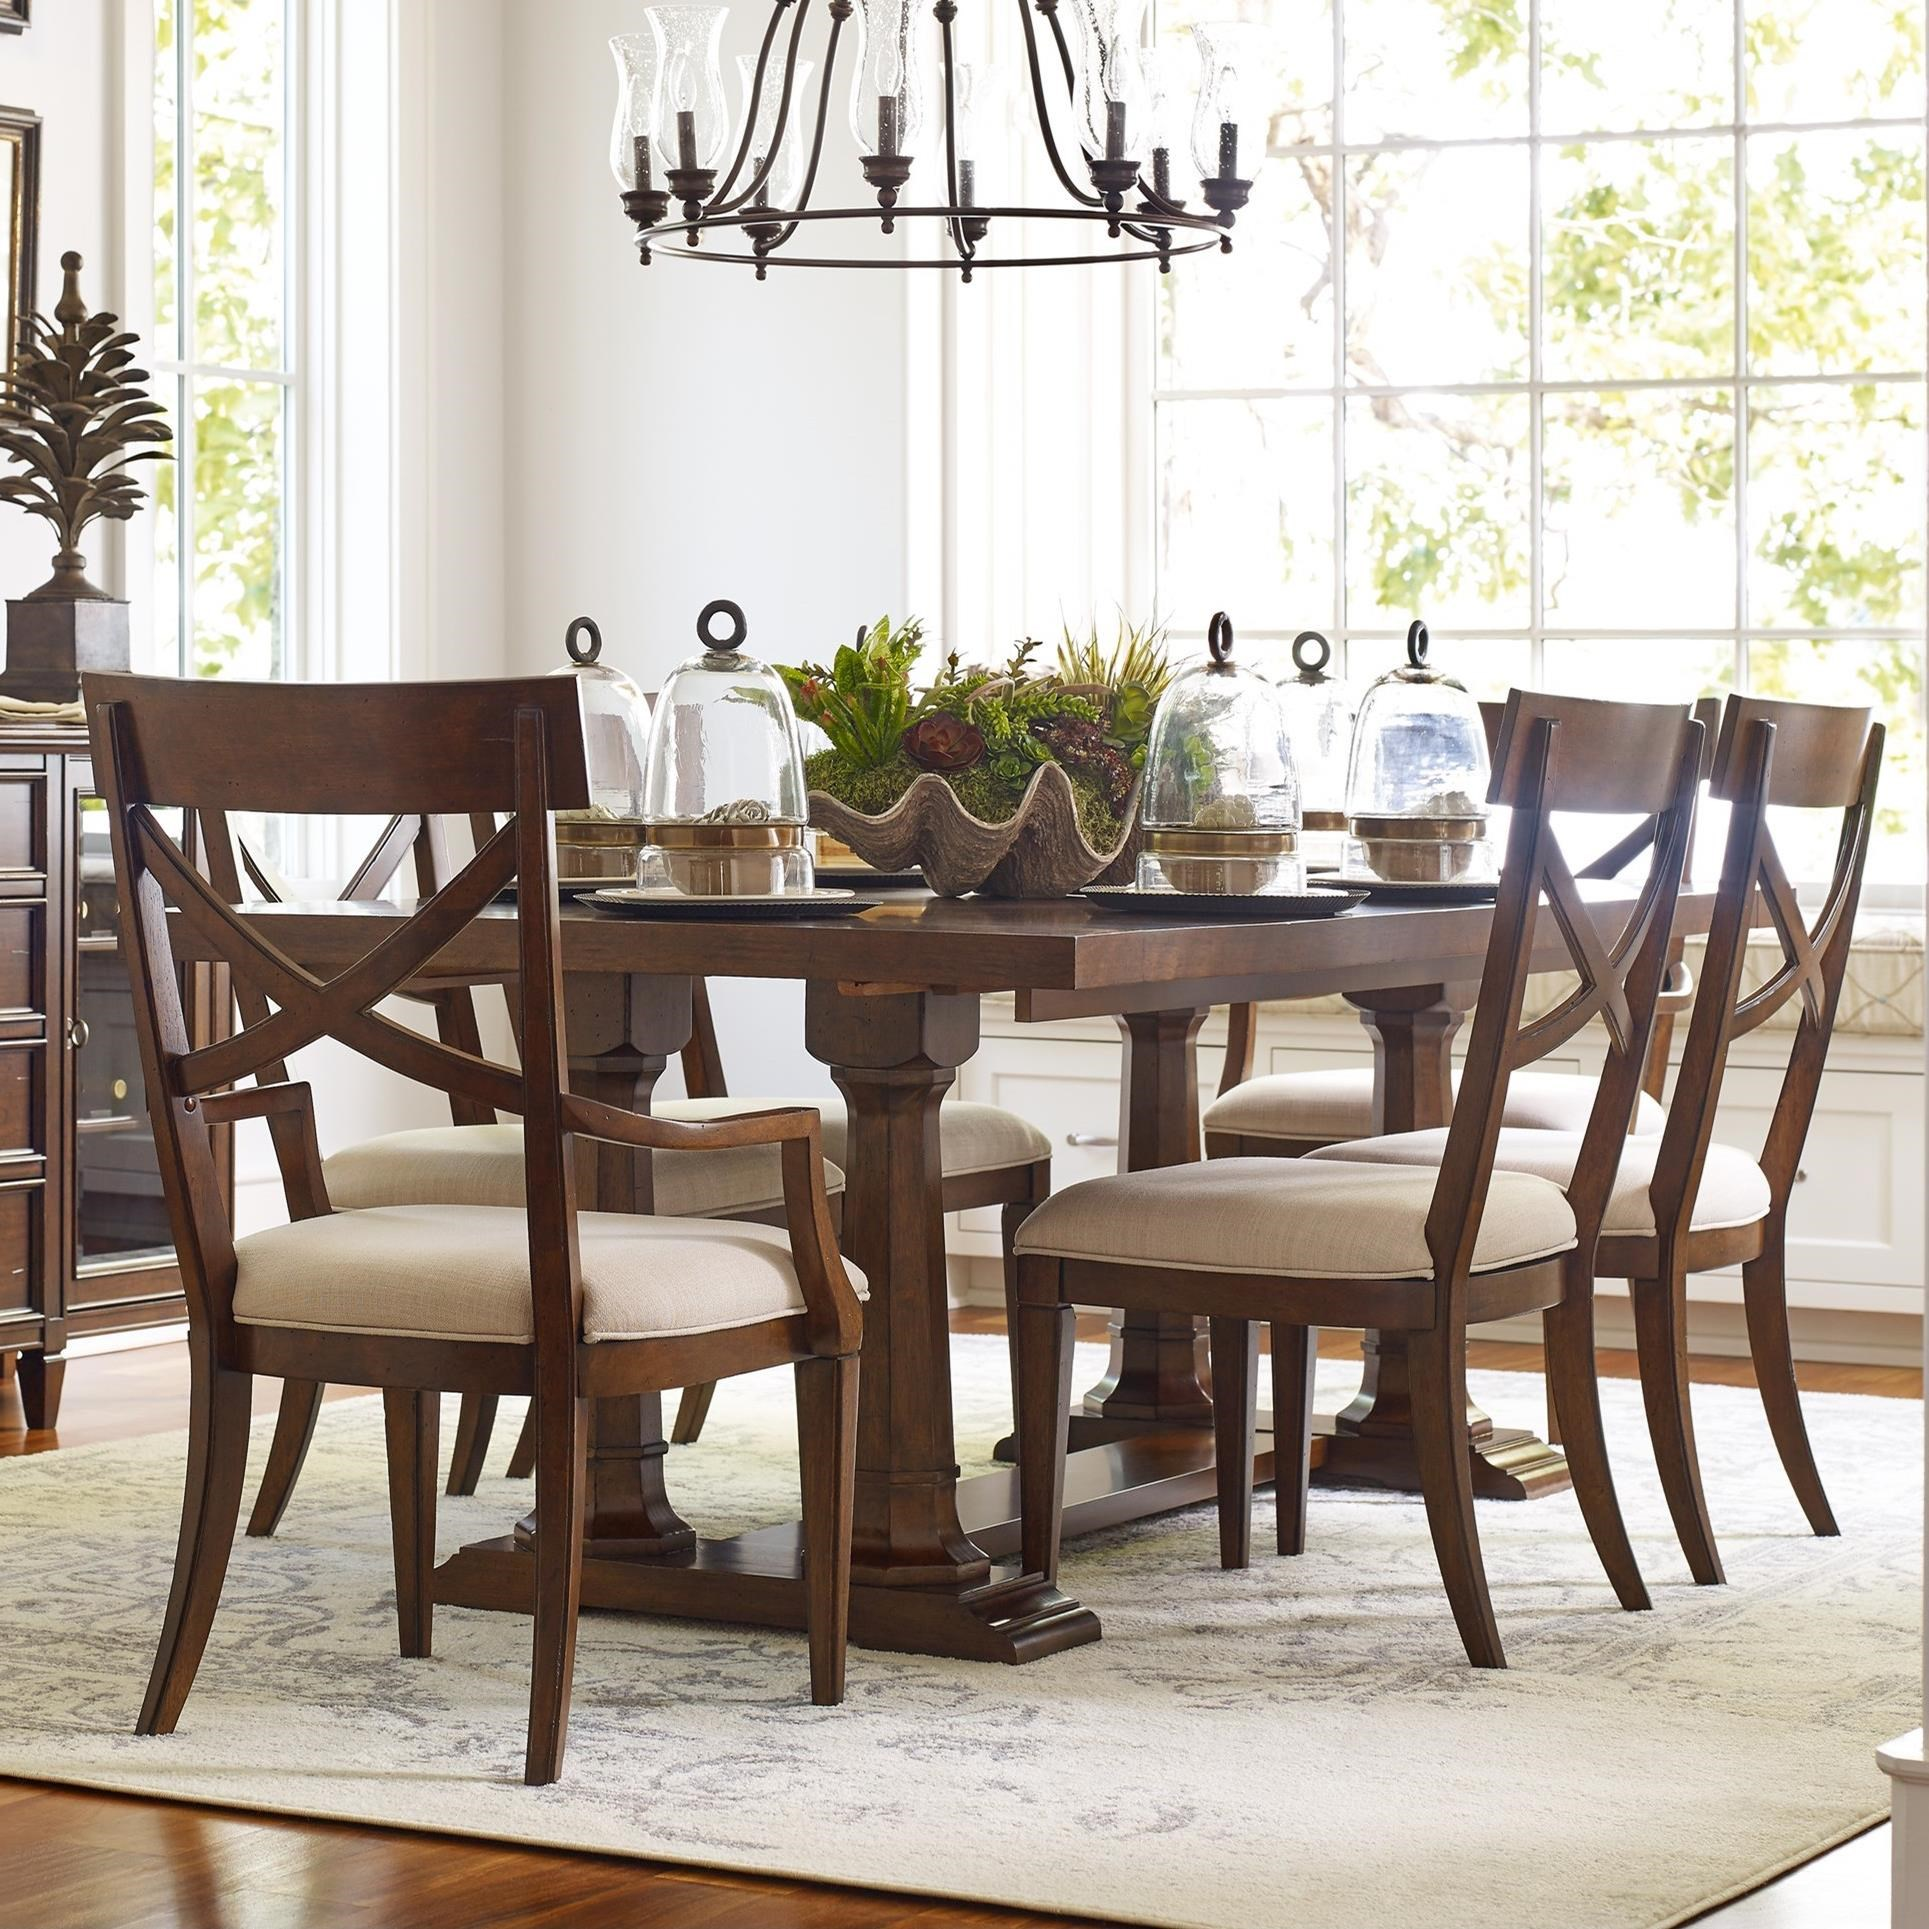 Rachael ray home by legacy classic upstate 7 piece trestle for Legacy classic dining table